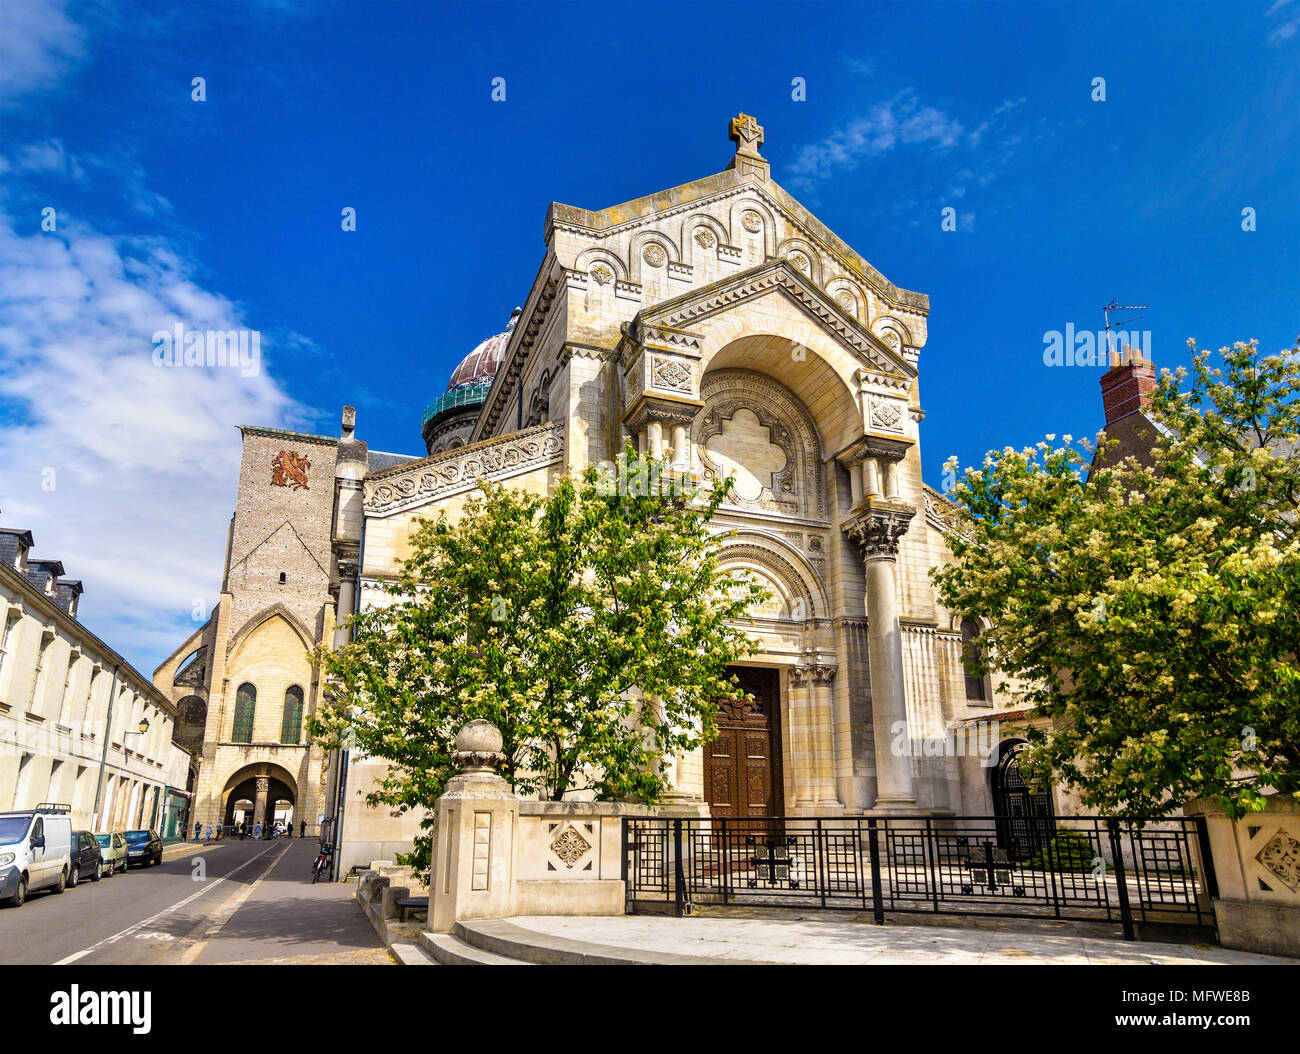 Basilica of St. Martin in Tours - France - Stock Image